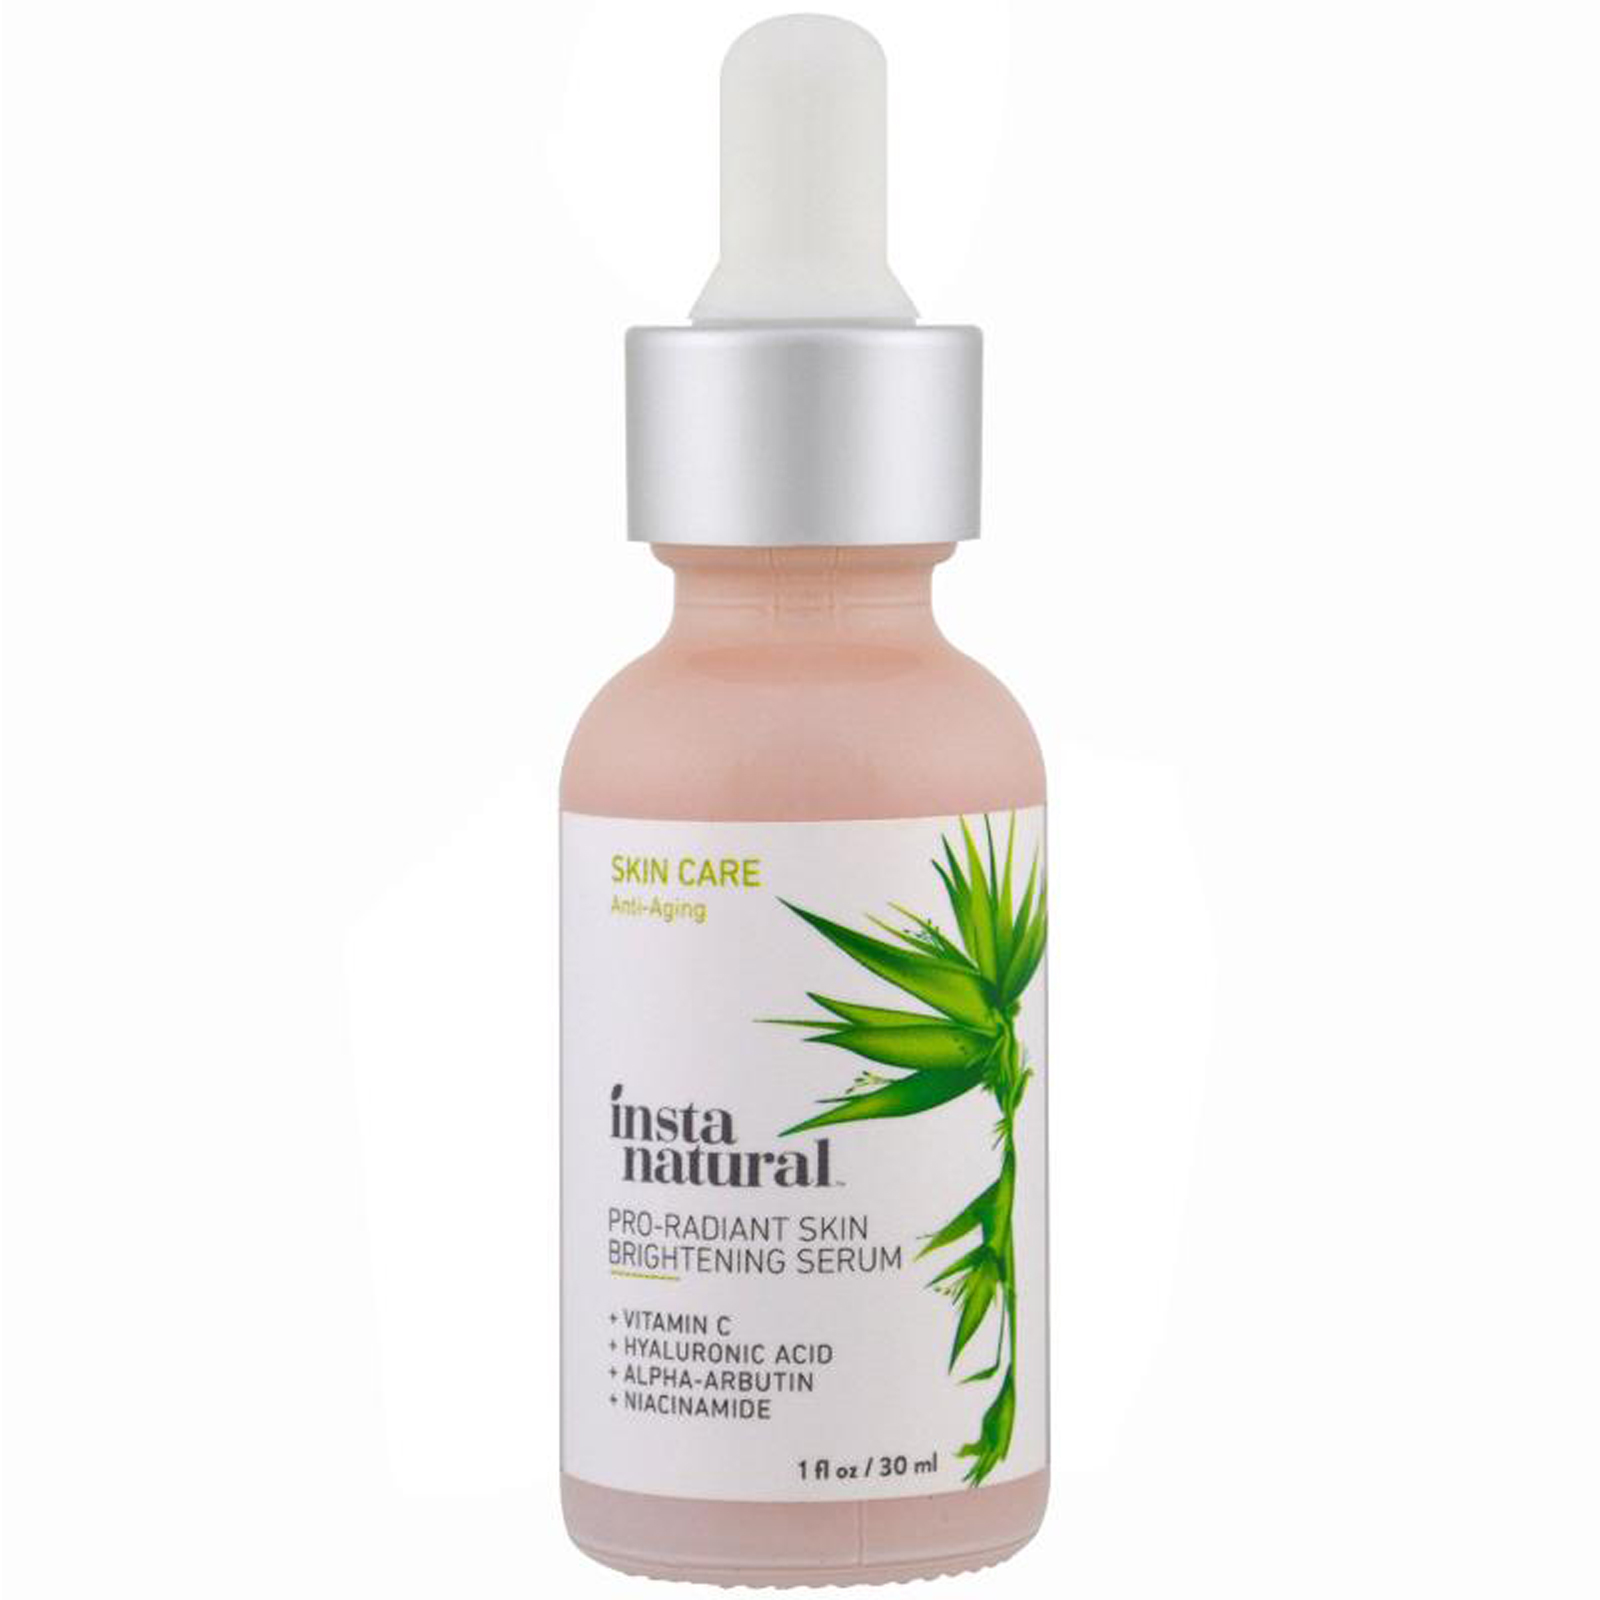 InstaNatural Pro-Radiant Skin Brightening Serum